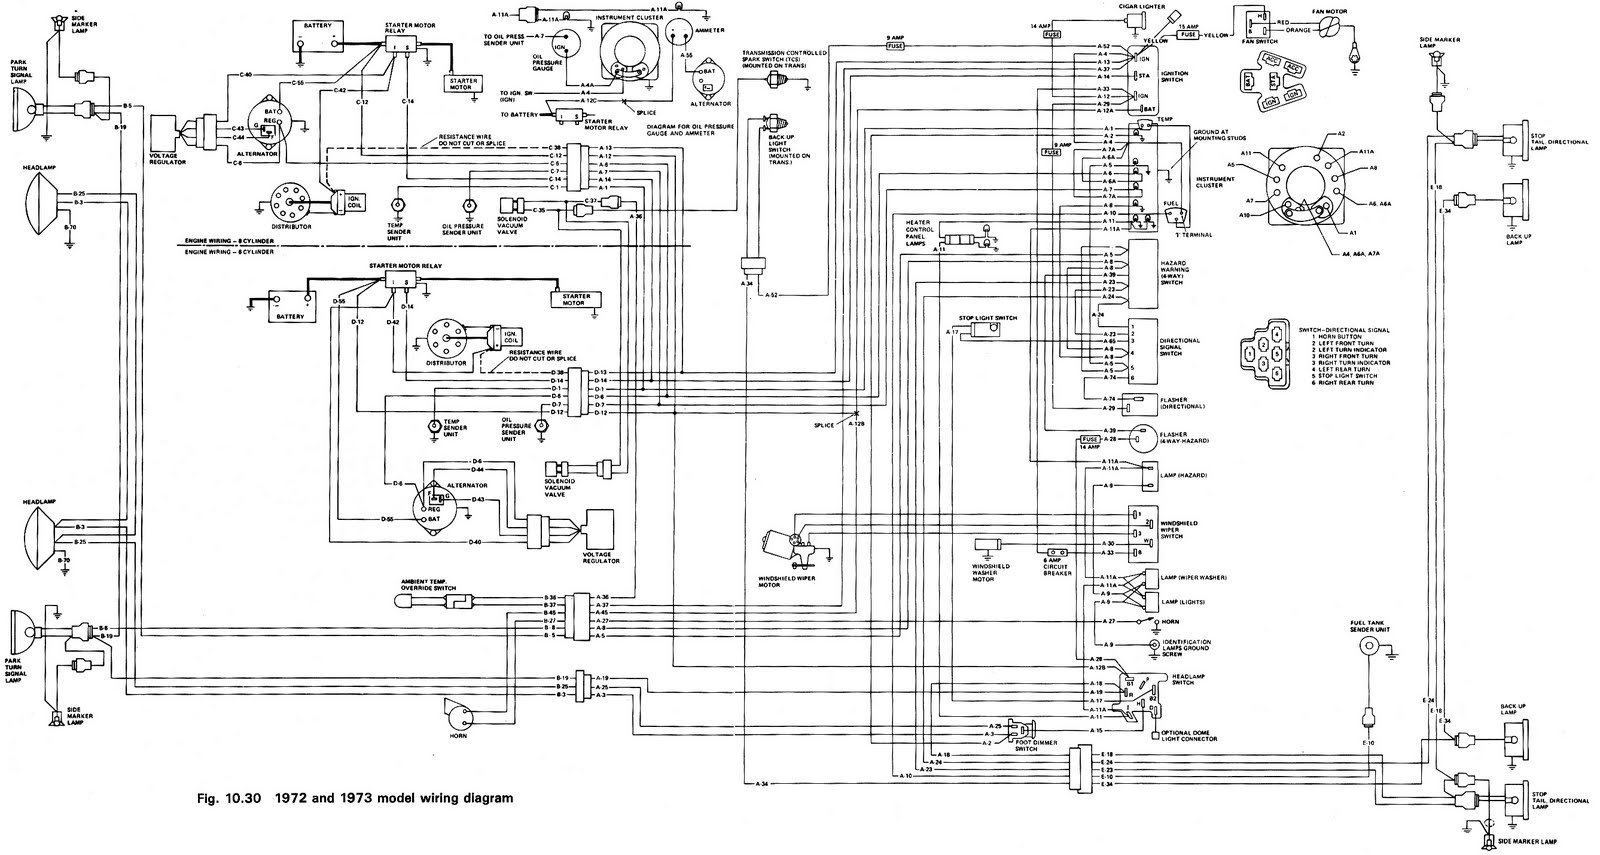 for a cj 7 wiring diagram